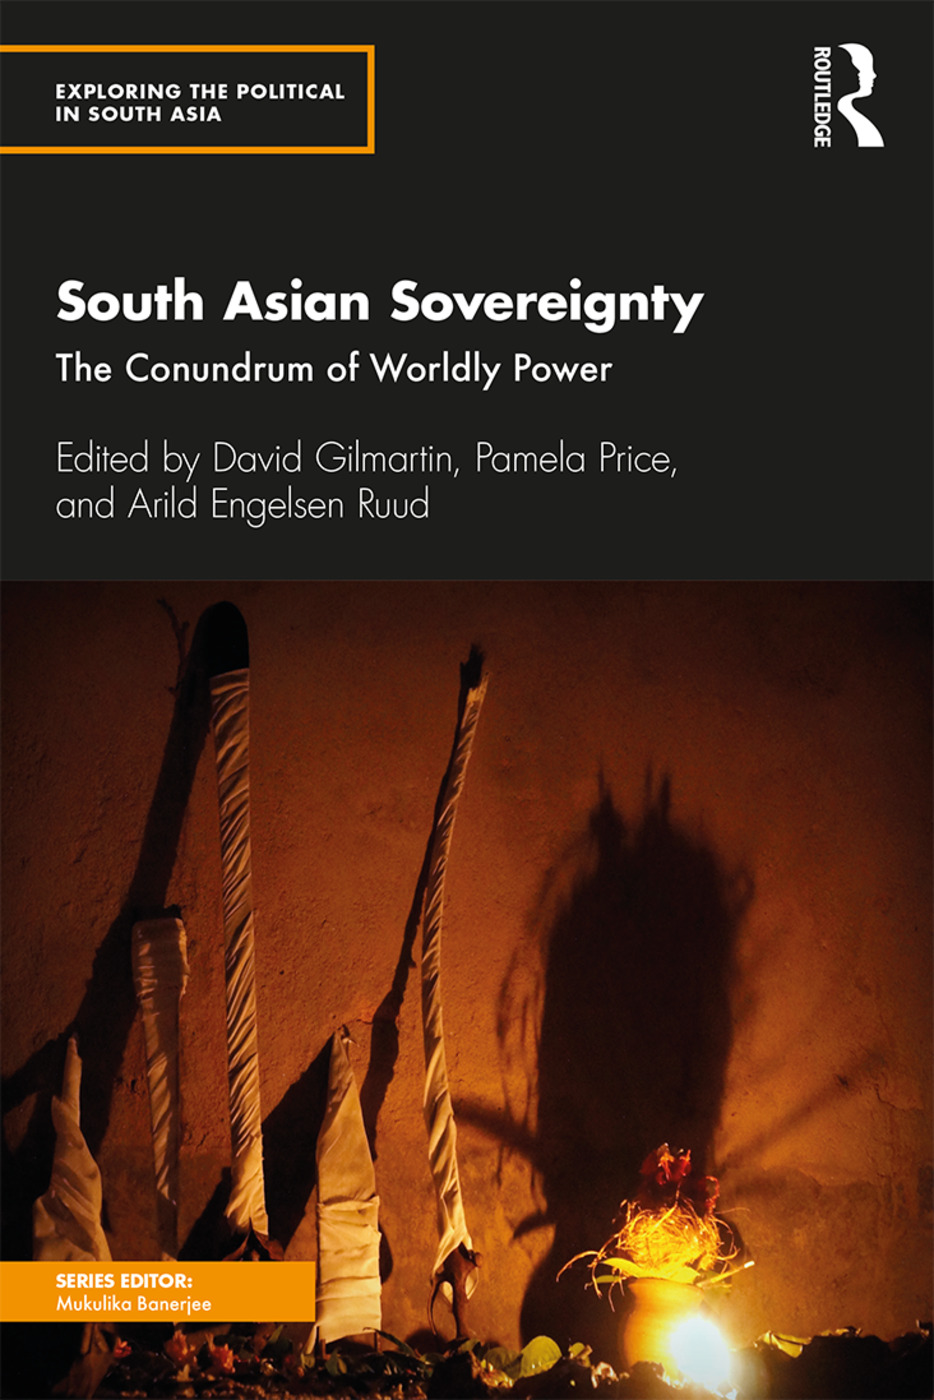 South Asian Sovereignty: The Conundrum of Worldly Power book cover